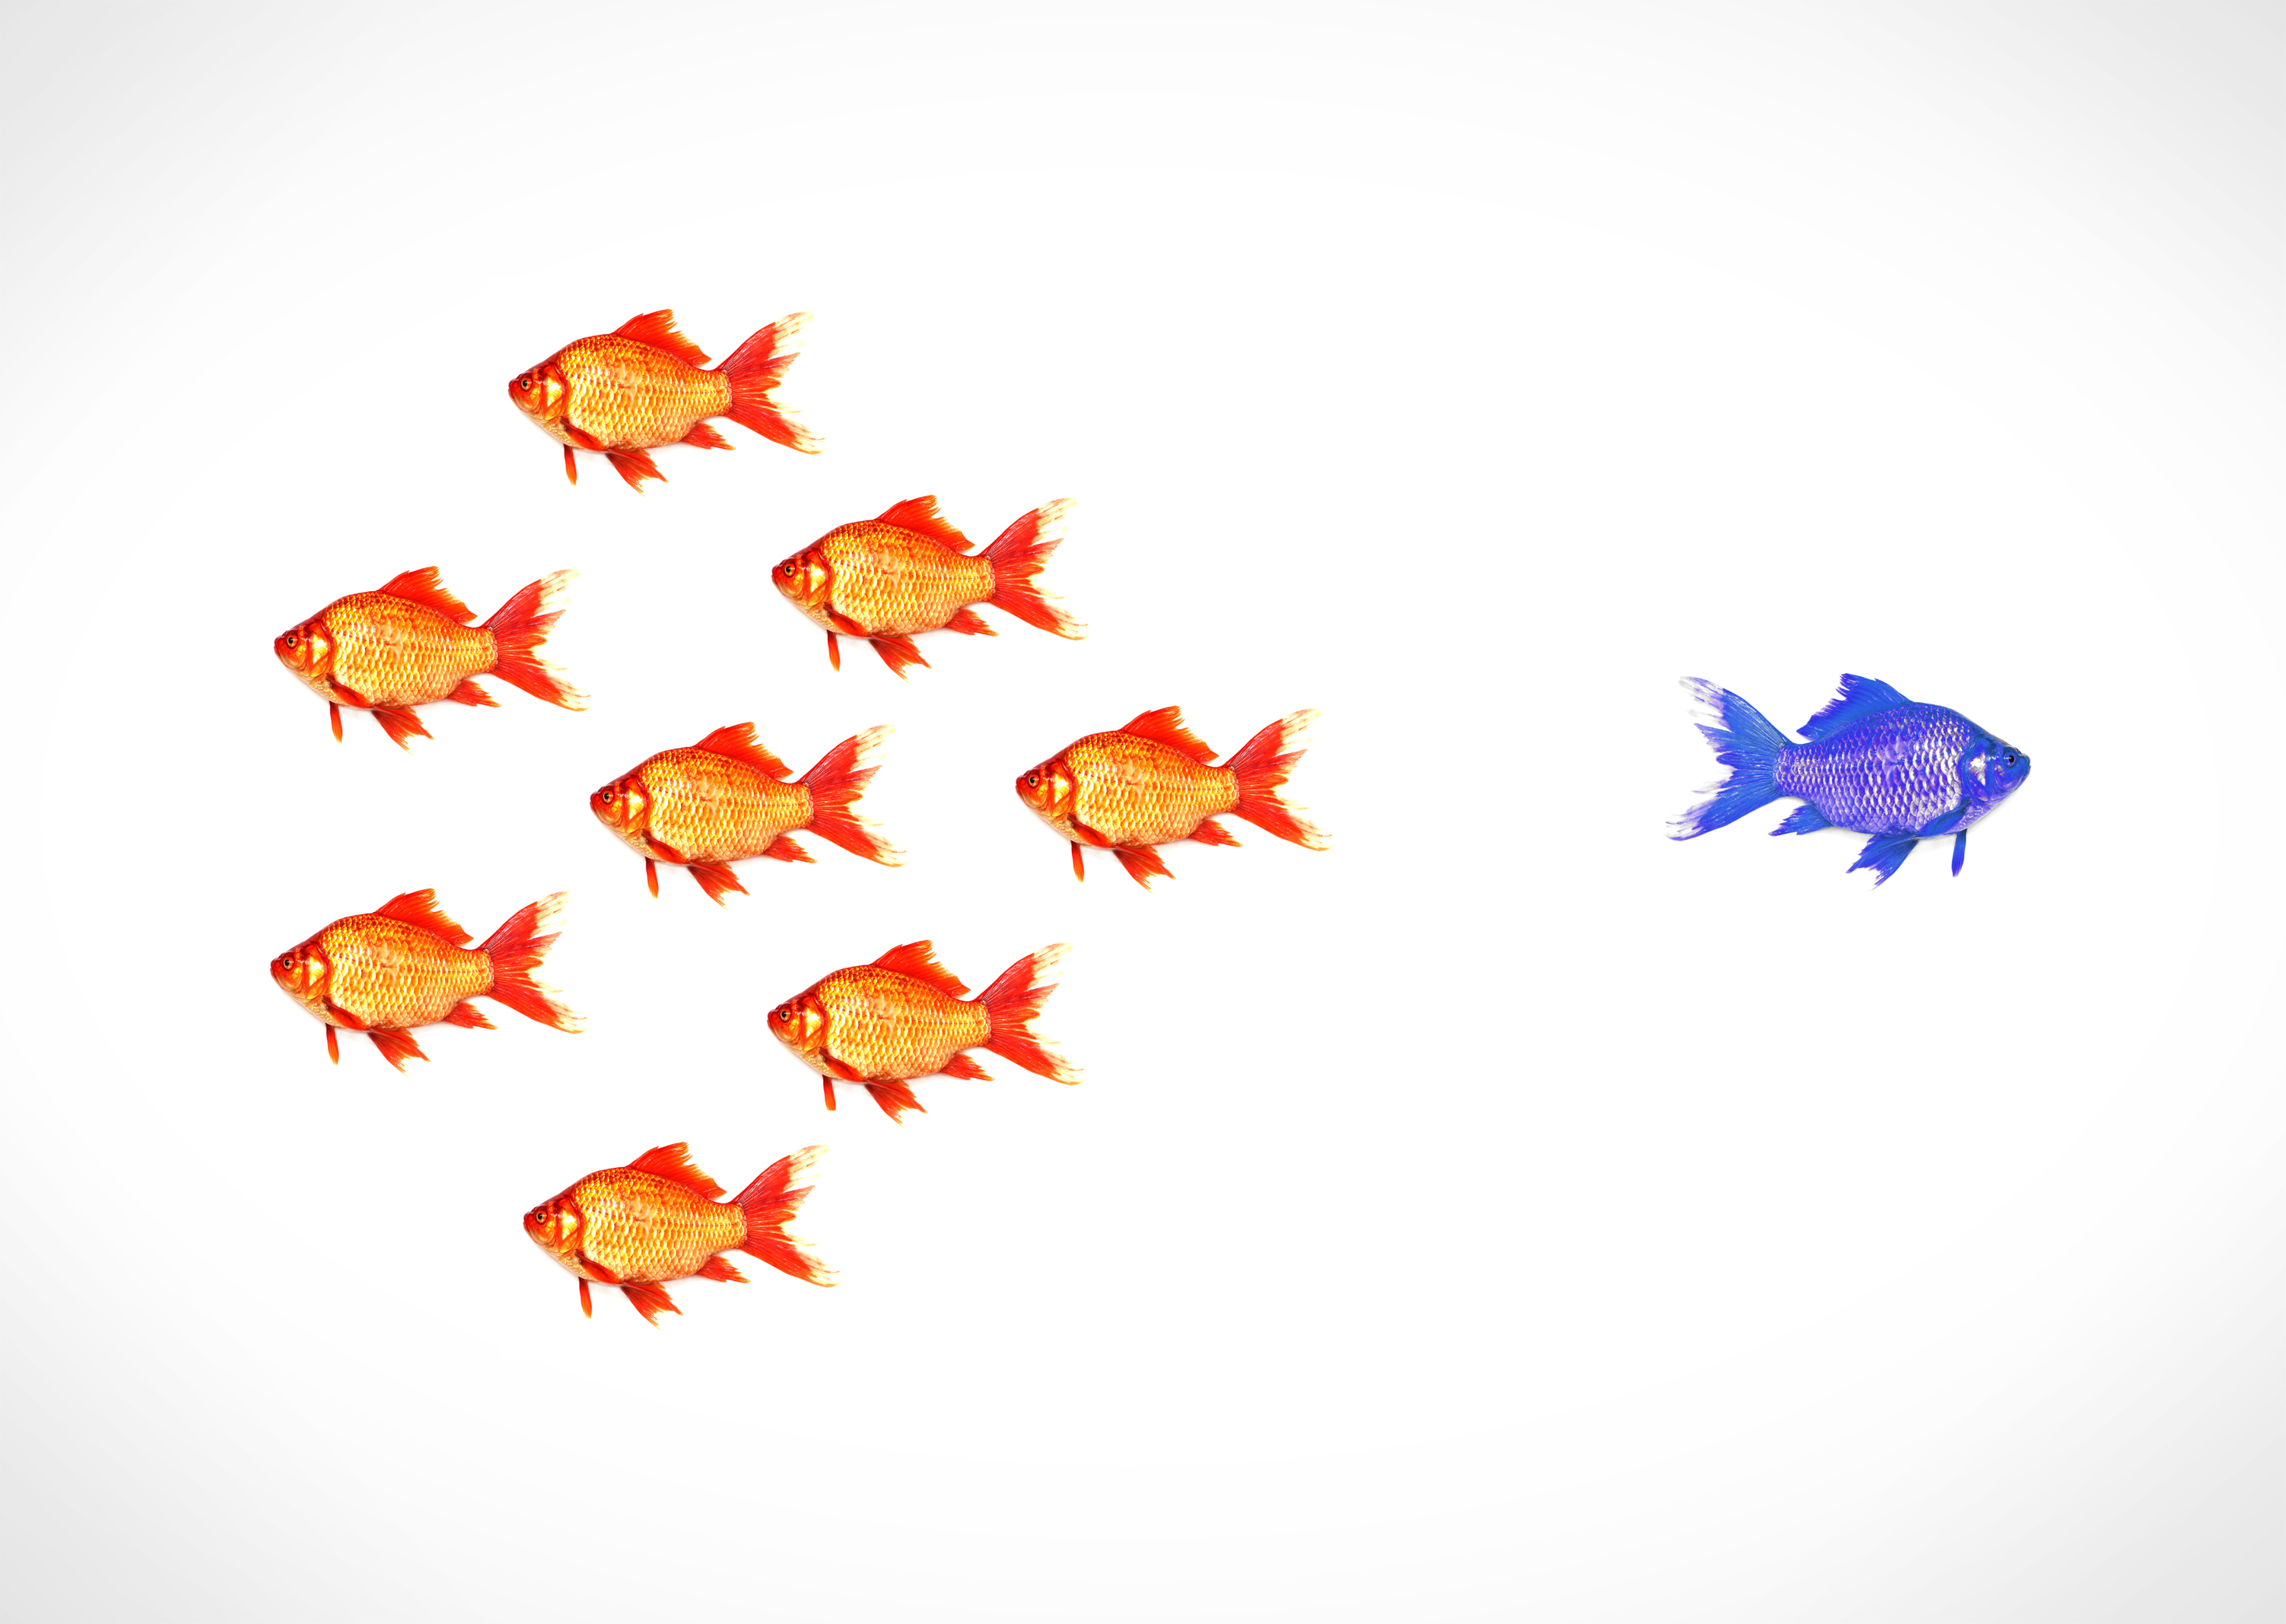 Standing out from the crowd - A blue goldfish escapes from the shoal, Against, Odd, Rare, Raised, HQ Photo